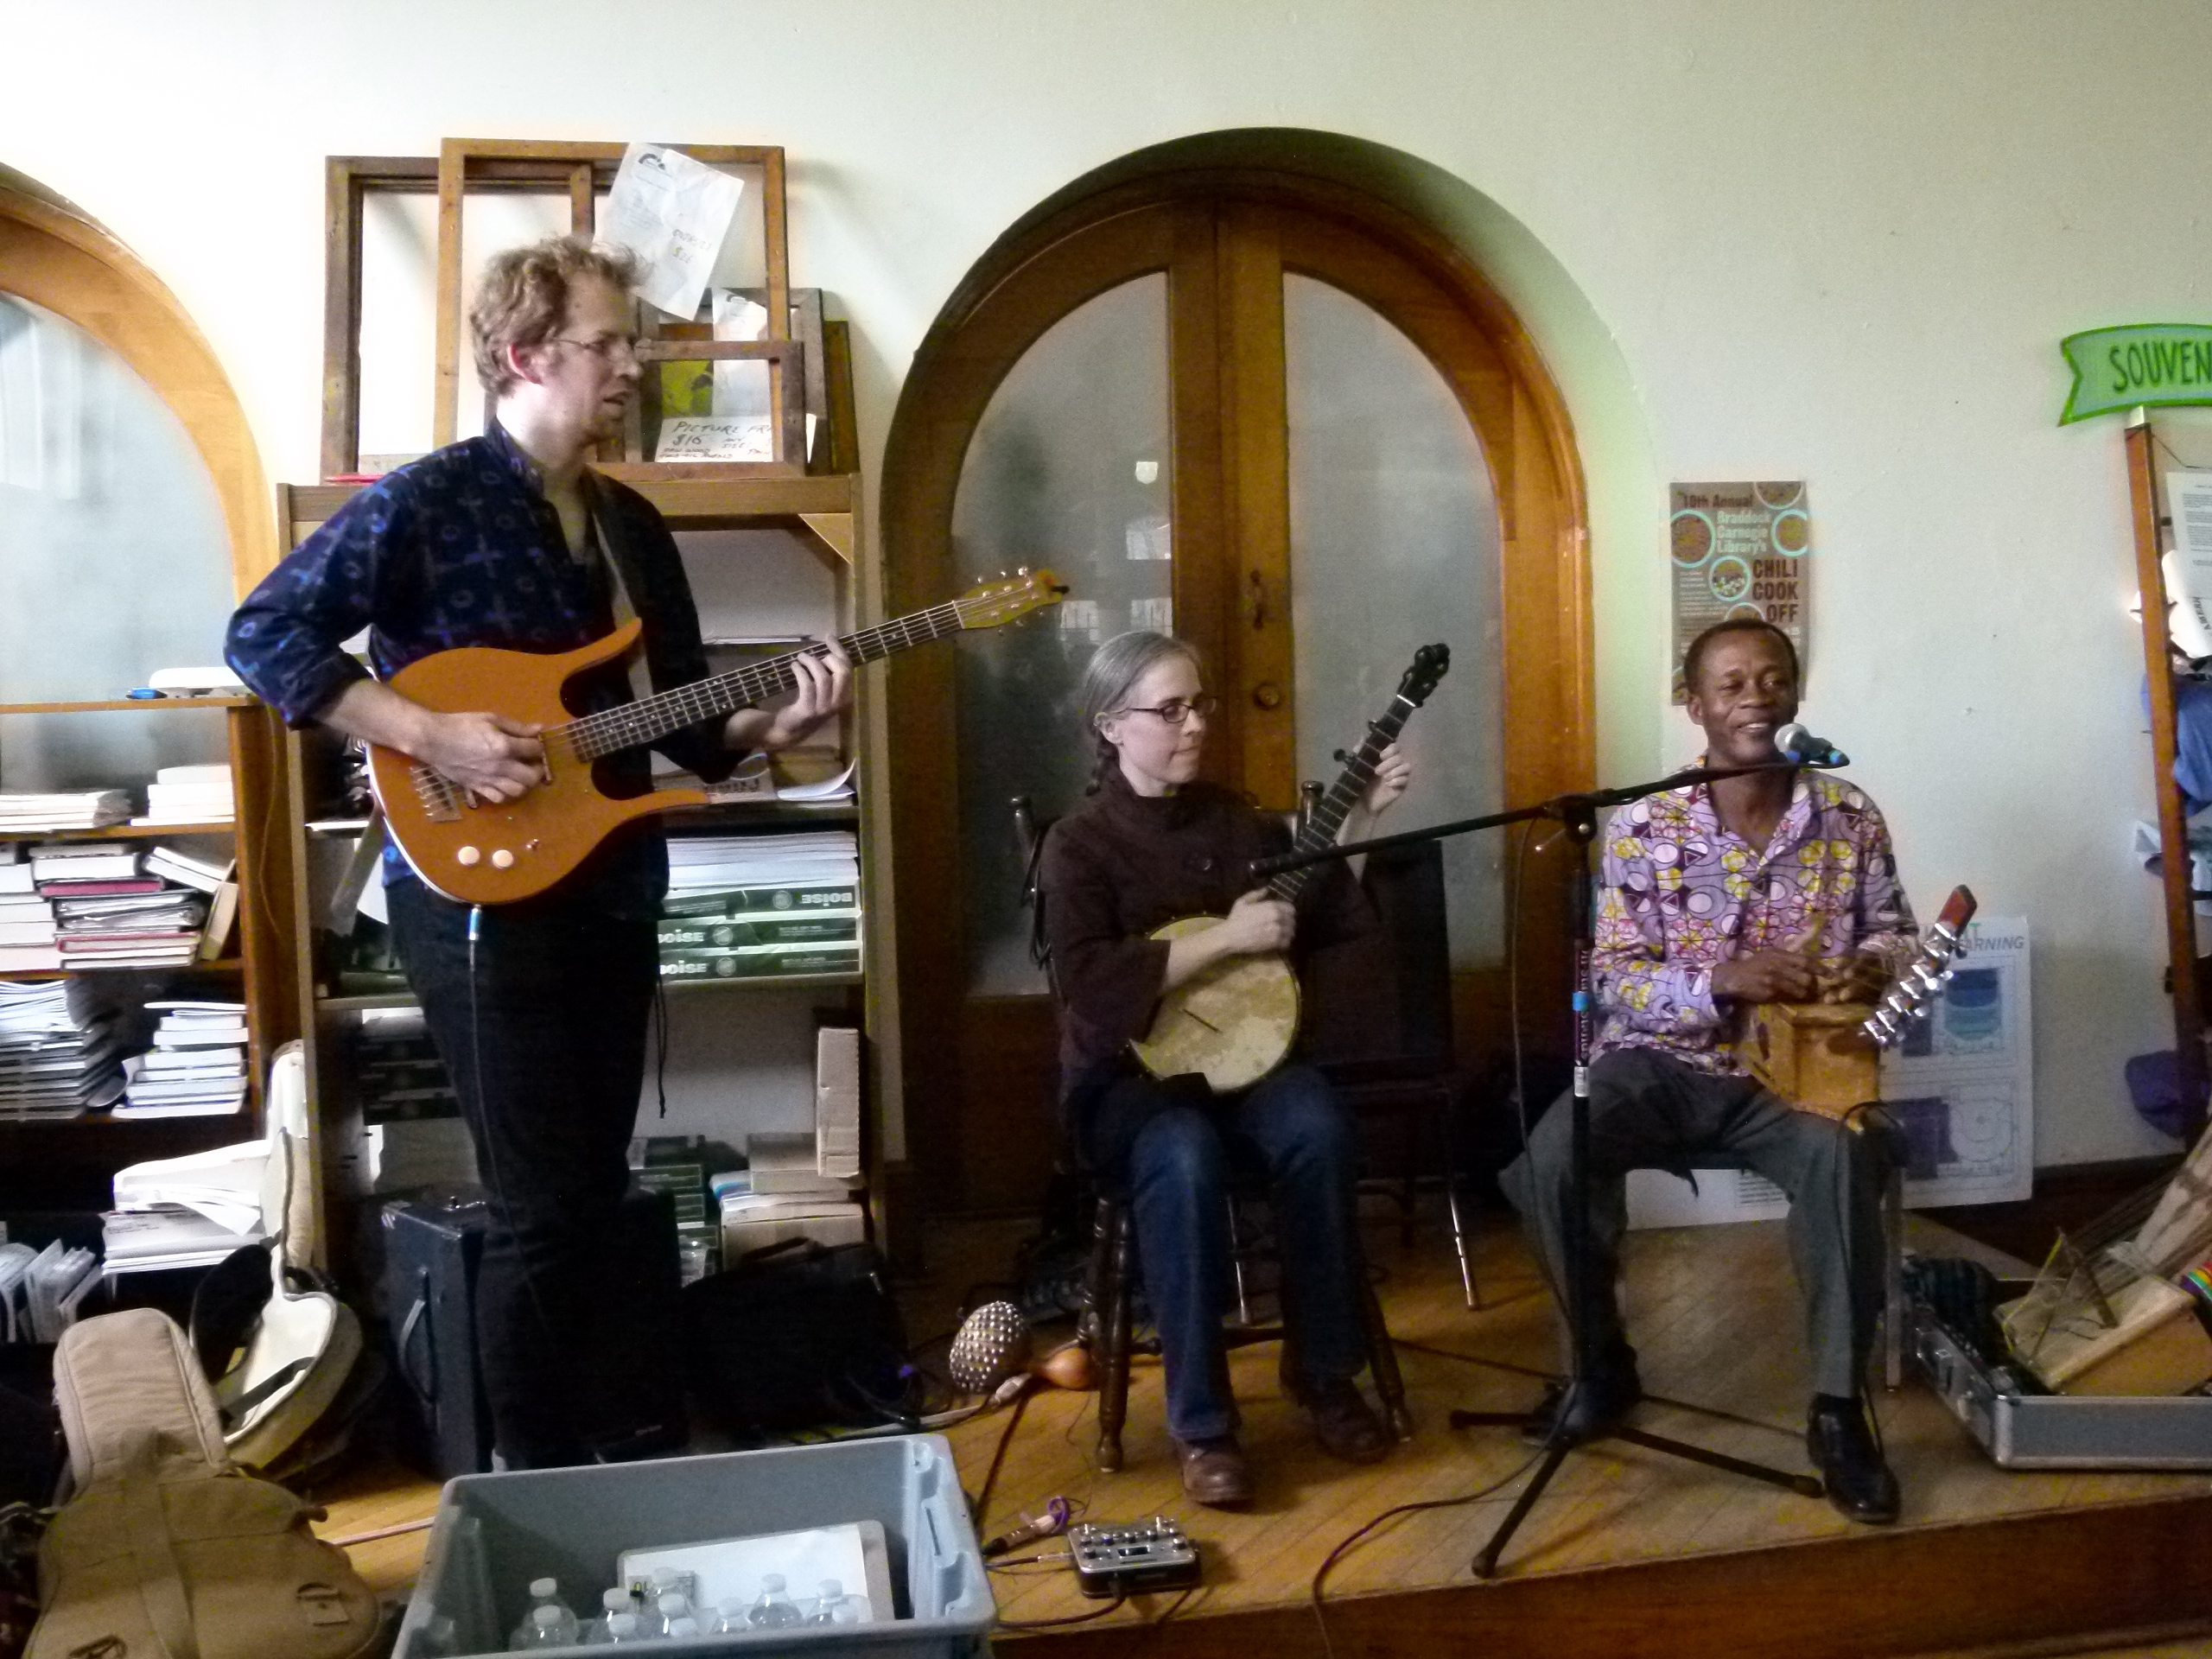 Live music was provided by (l. to r.) Colter Harper, Emily Pinkerton, and Osei Korankye.